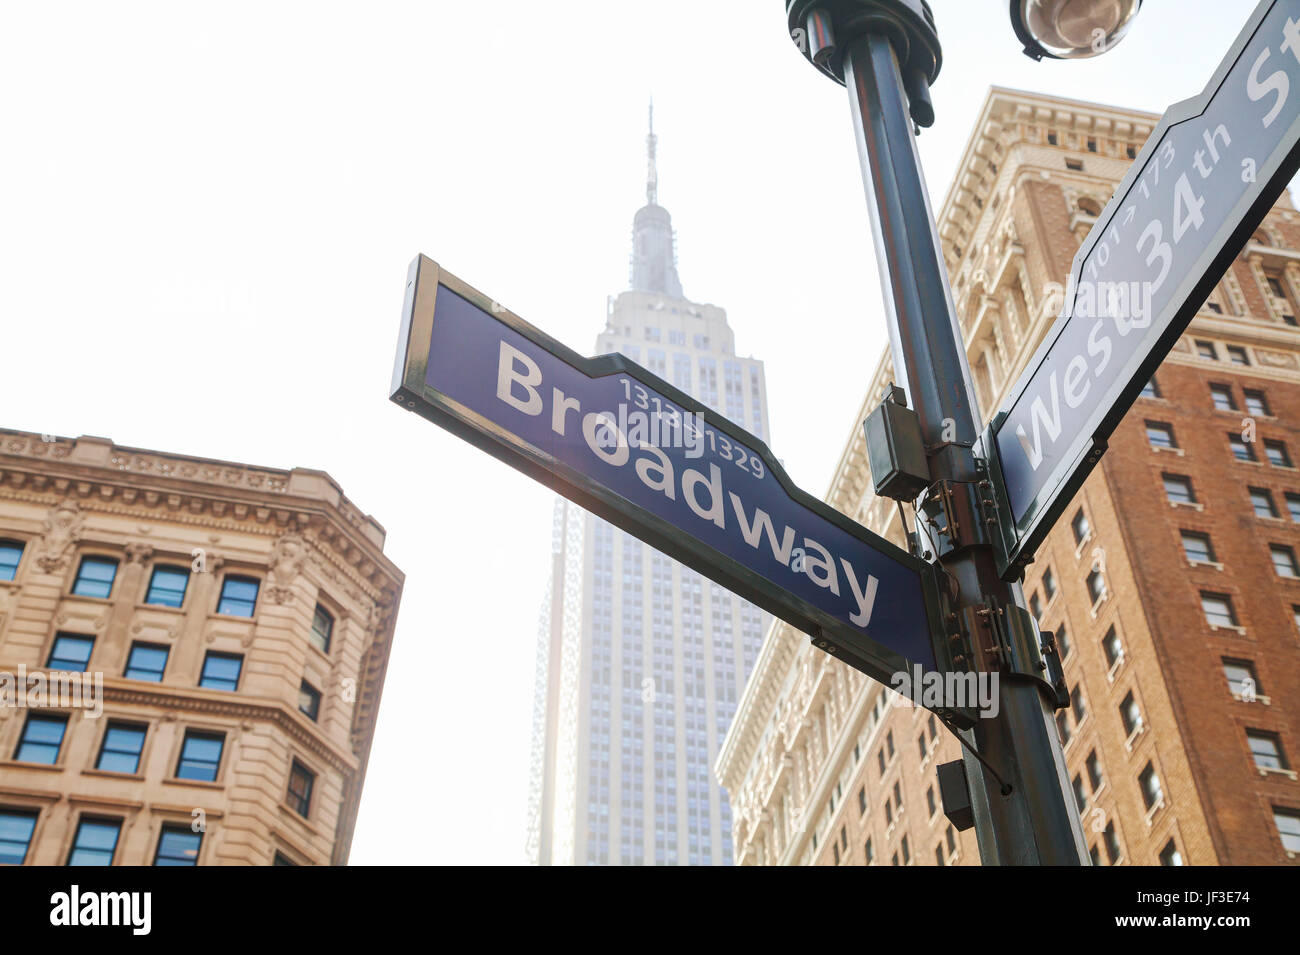 Broadway sign in New York - Stock Image